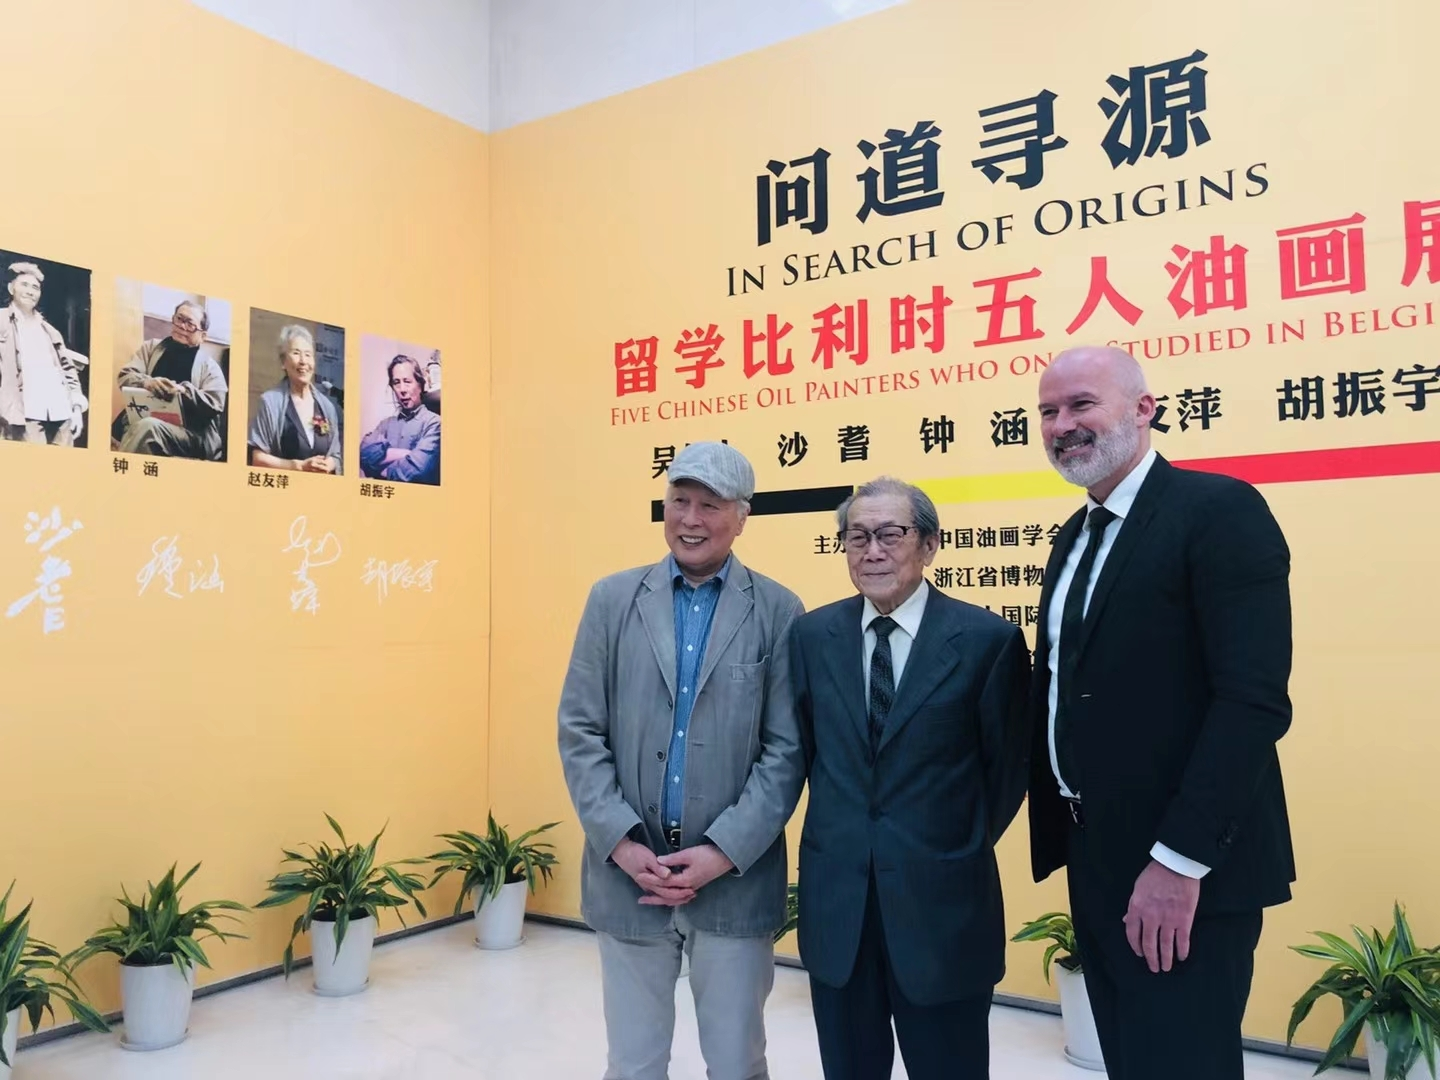 Photo Fan Peng - From left to right: Mr. Hu Zhenyu, Mr. Zhong Han and Mr. Bruno Jans, Consul General of Belgium in Shanghai